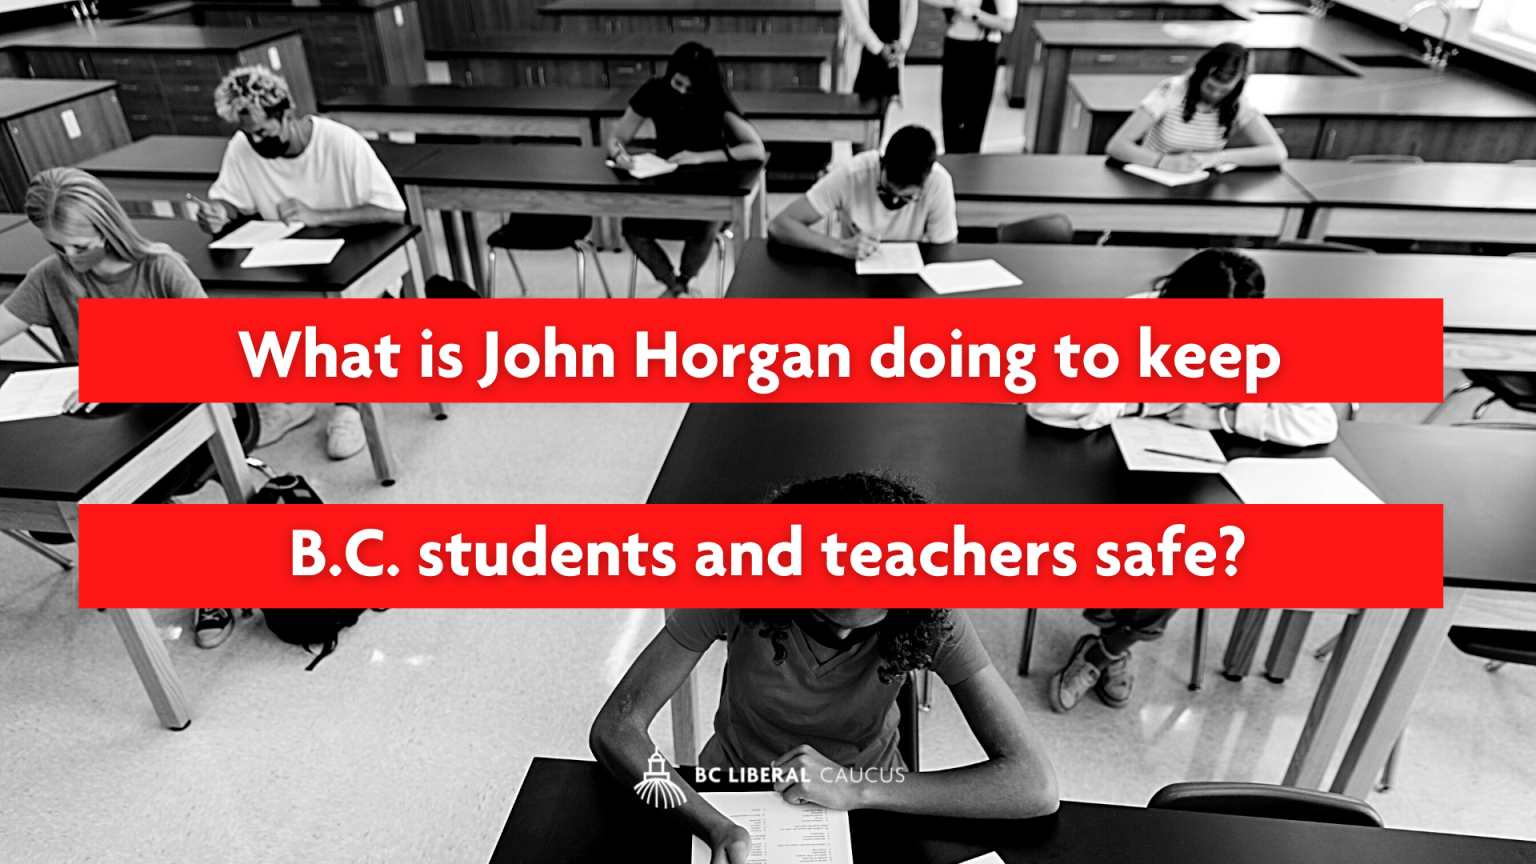 What is John Horgan doing to keep B.C. students and teachers safe?